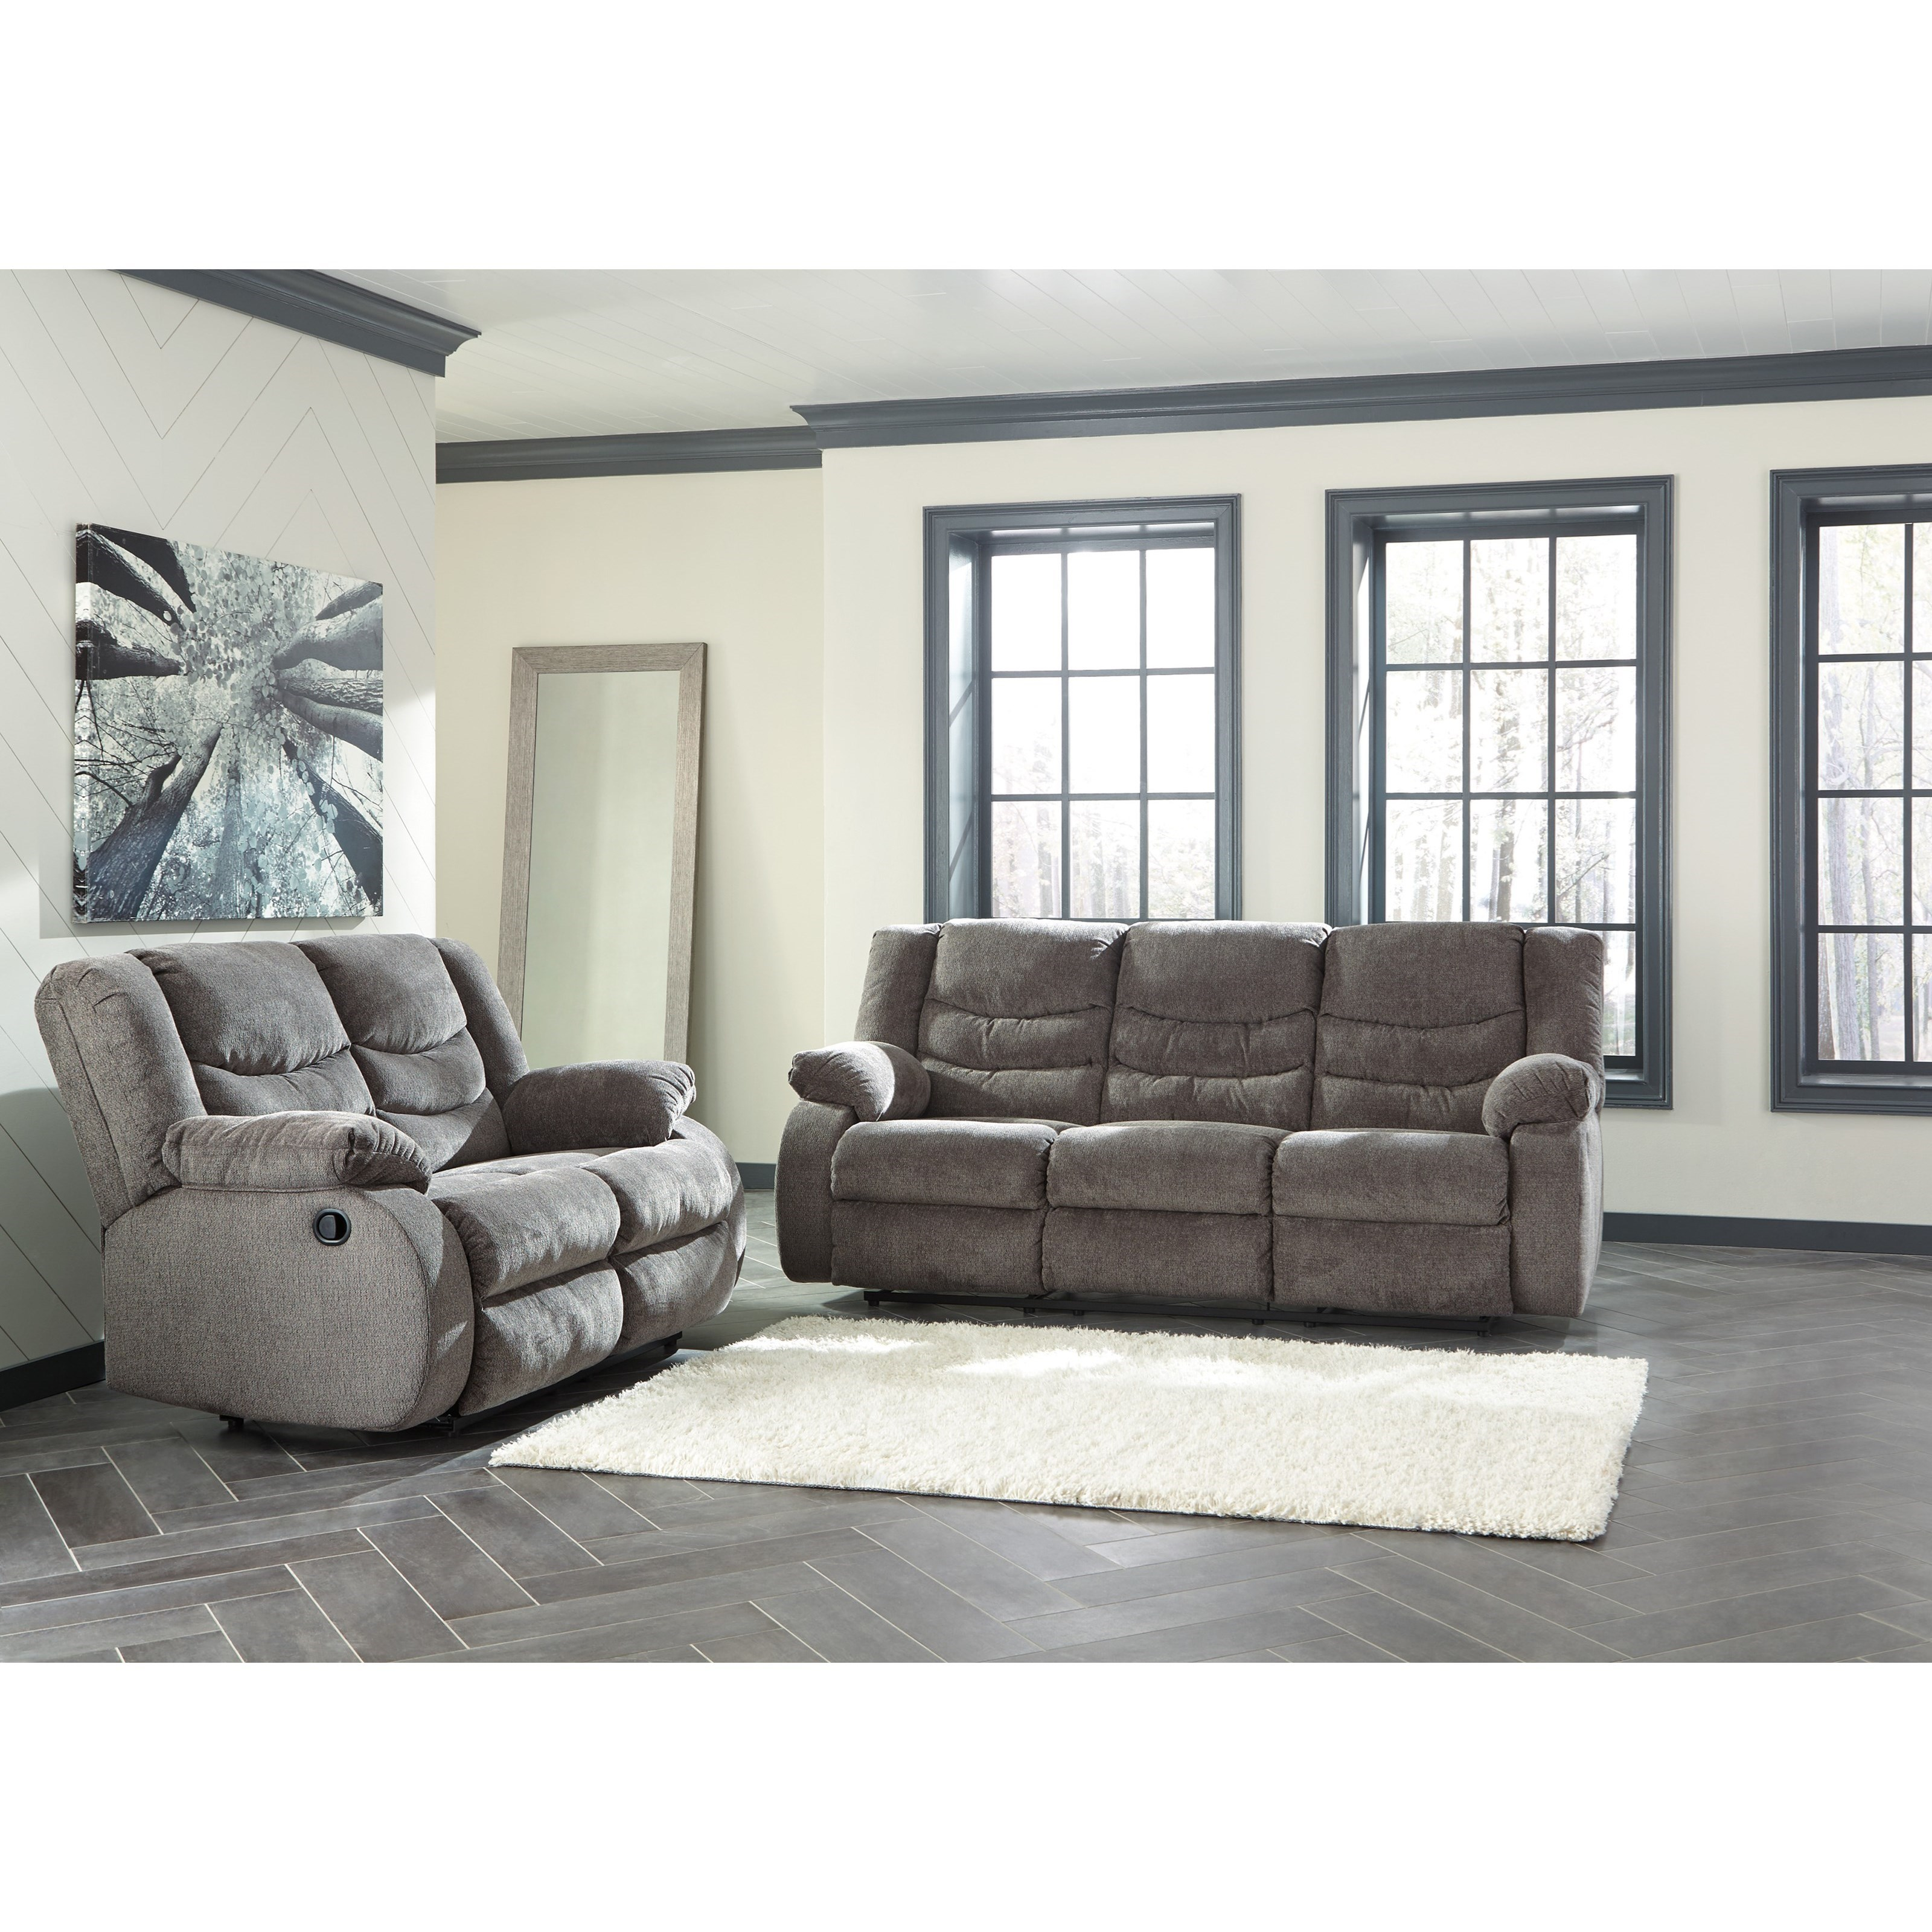 Signature design by ashley tulen reclining living room for Living room group sets